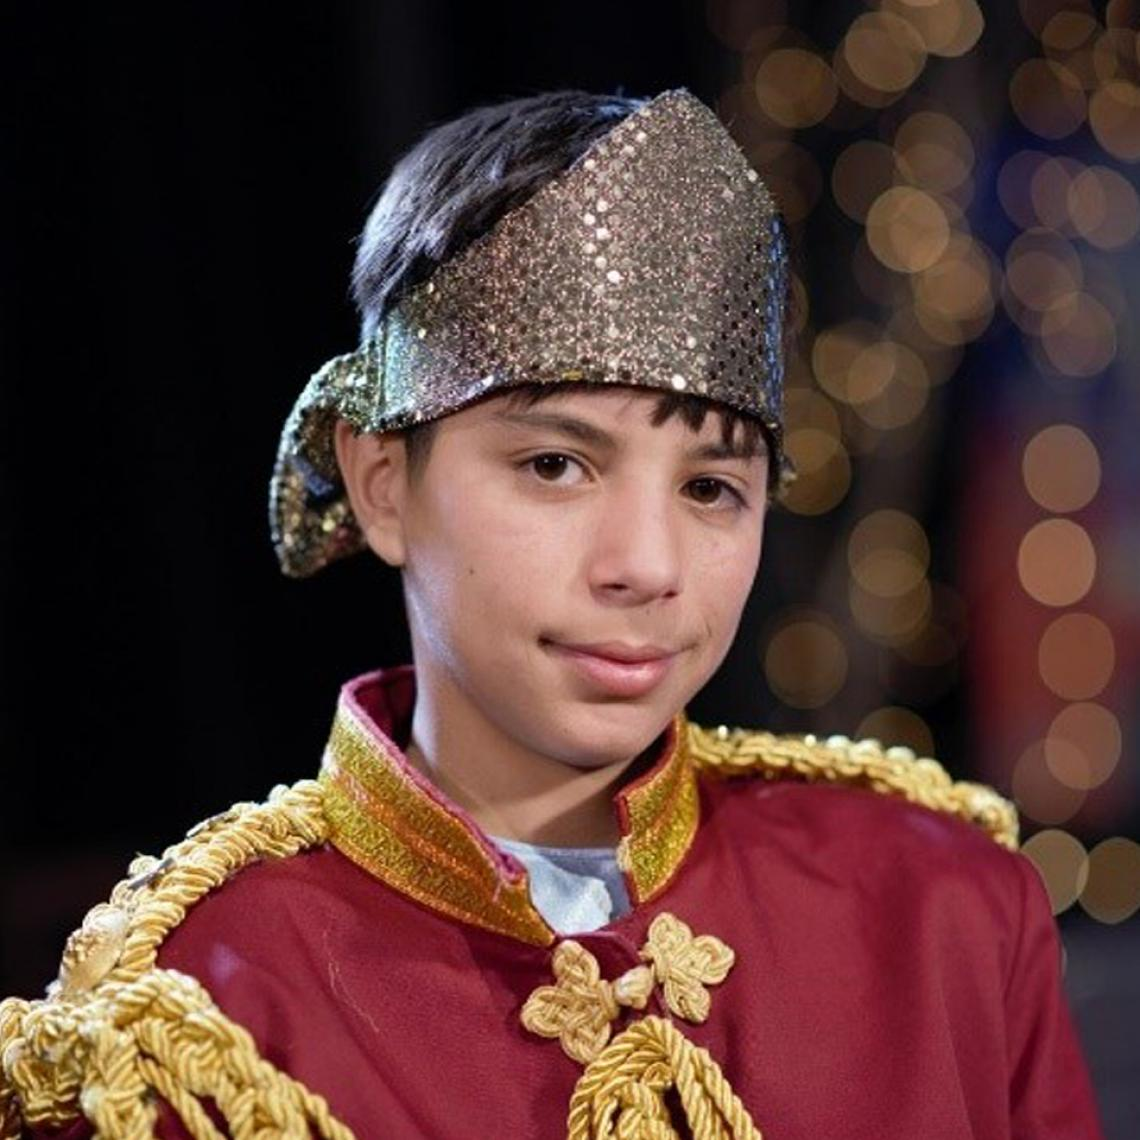 Muhammad (12) in a costume of a prince smiling at the camera.